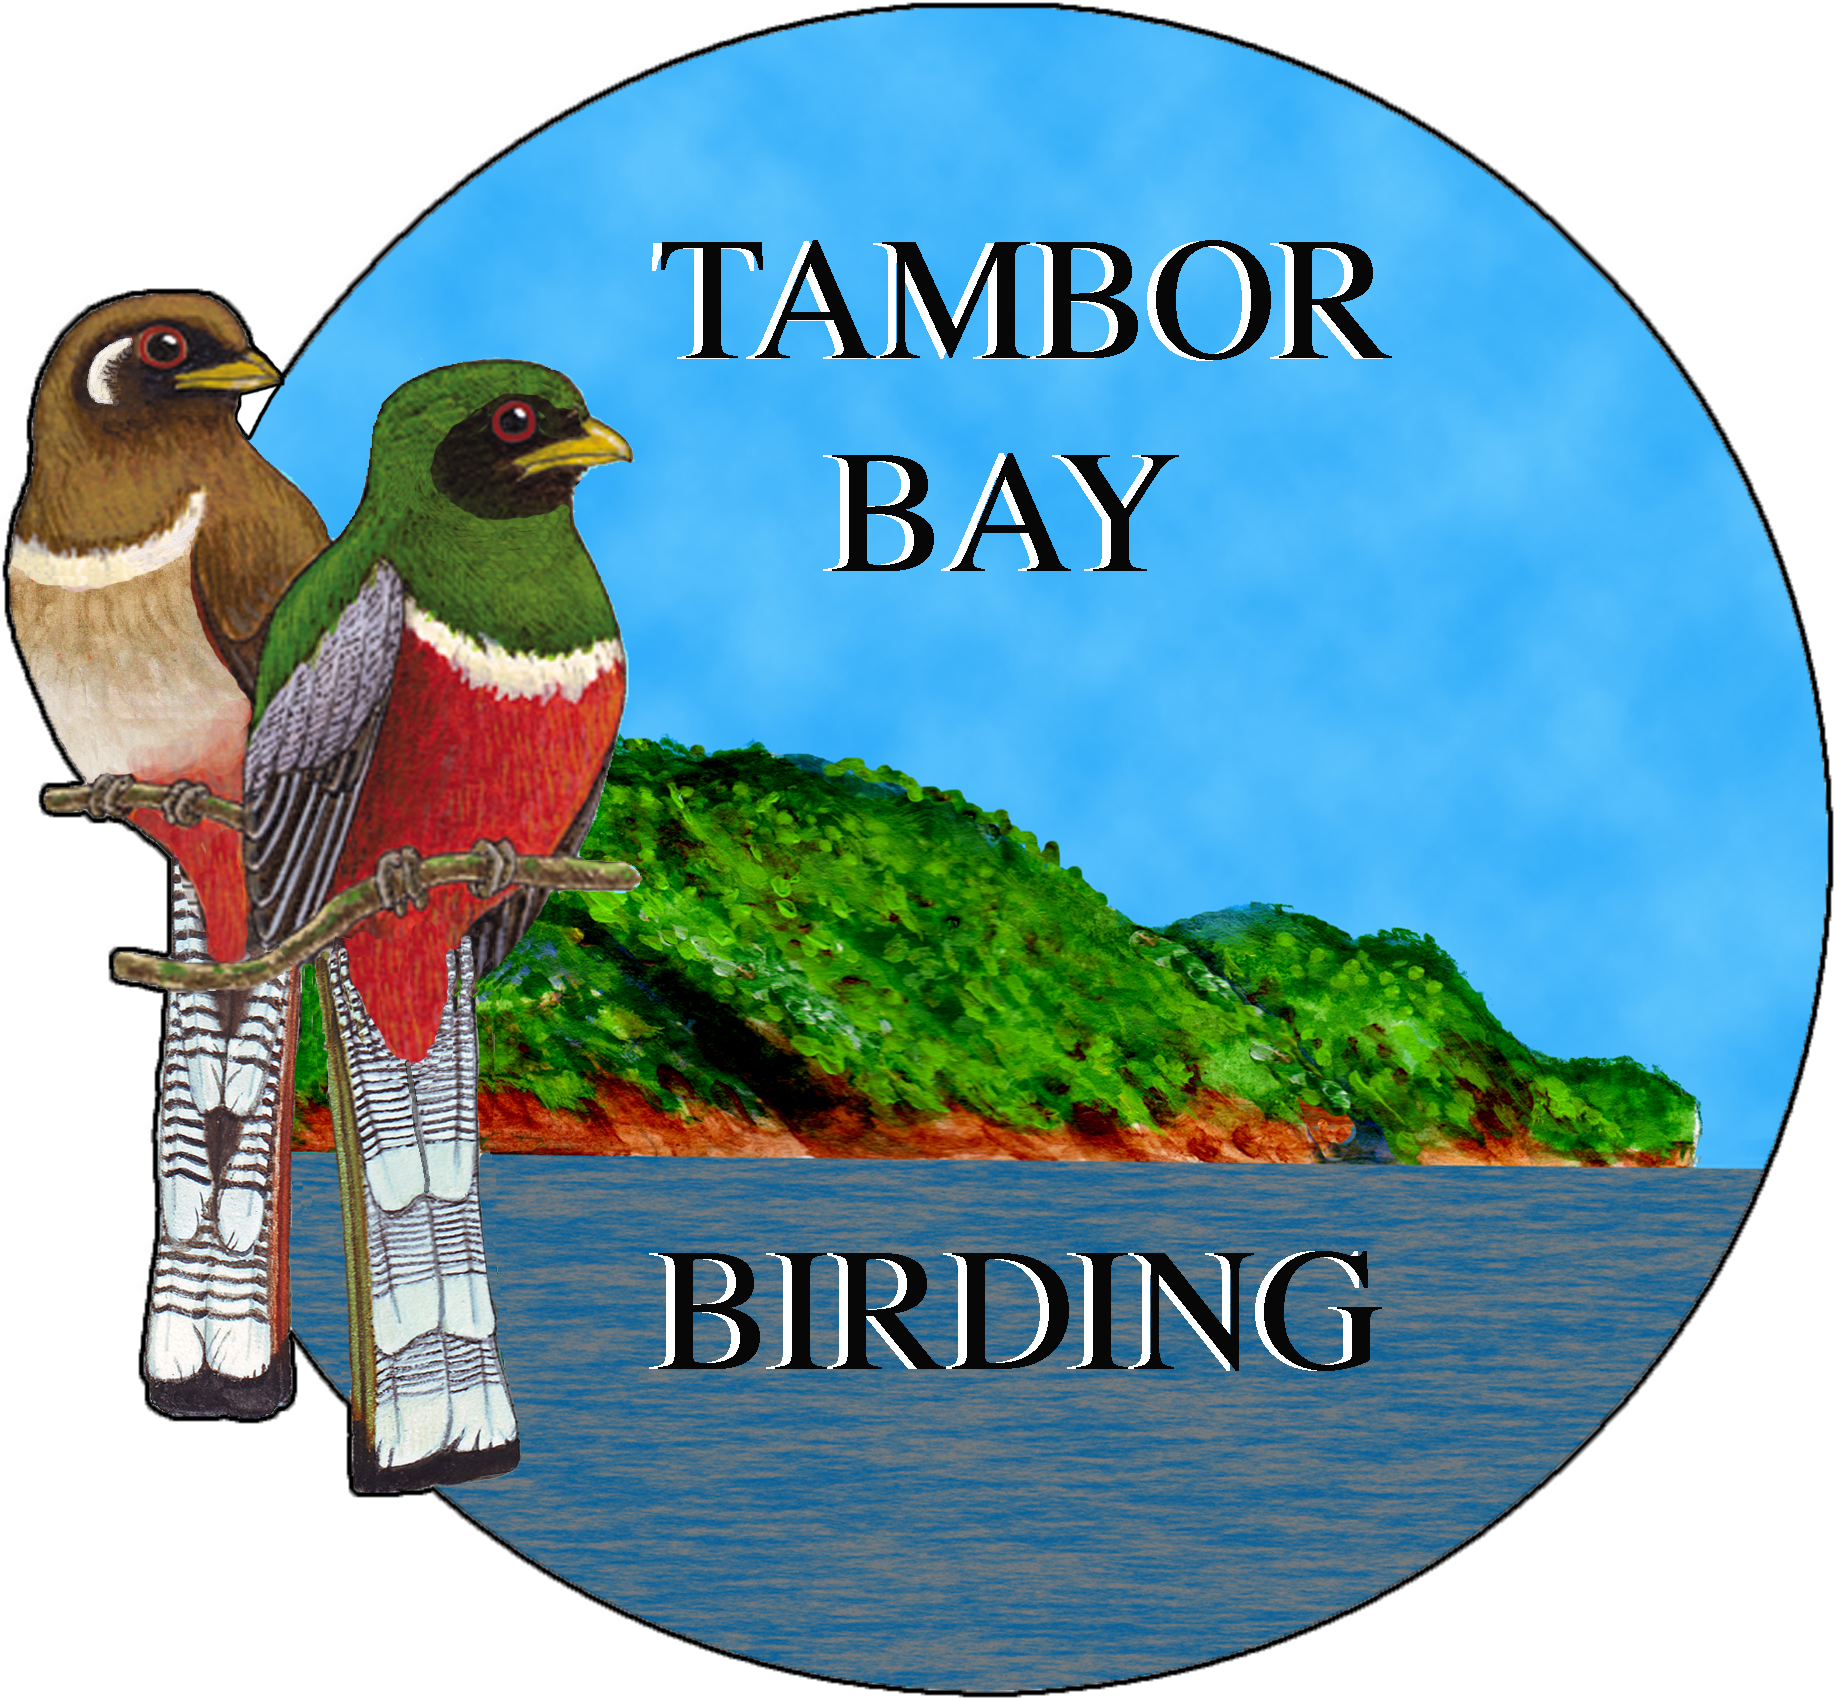 Proud member of the Tambor Bay Birding Association